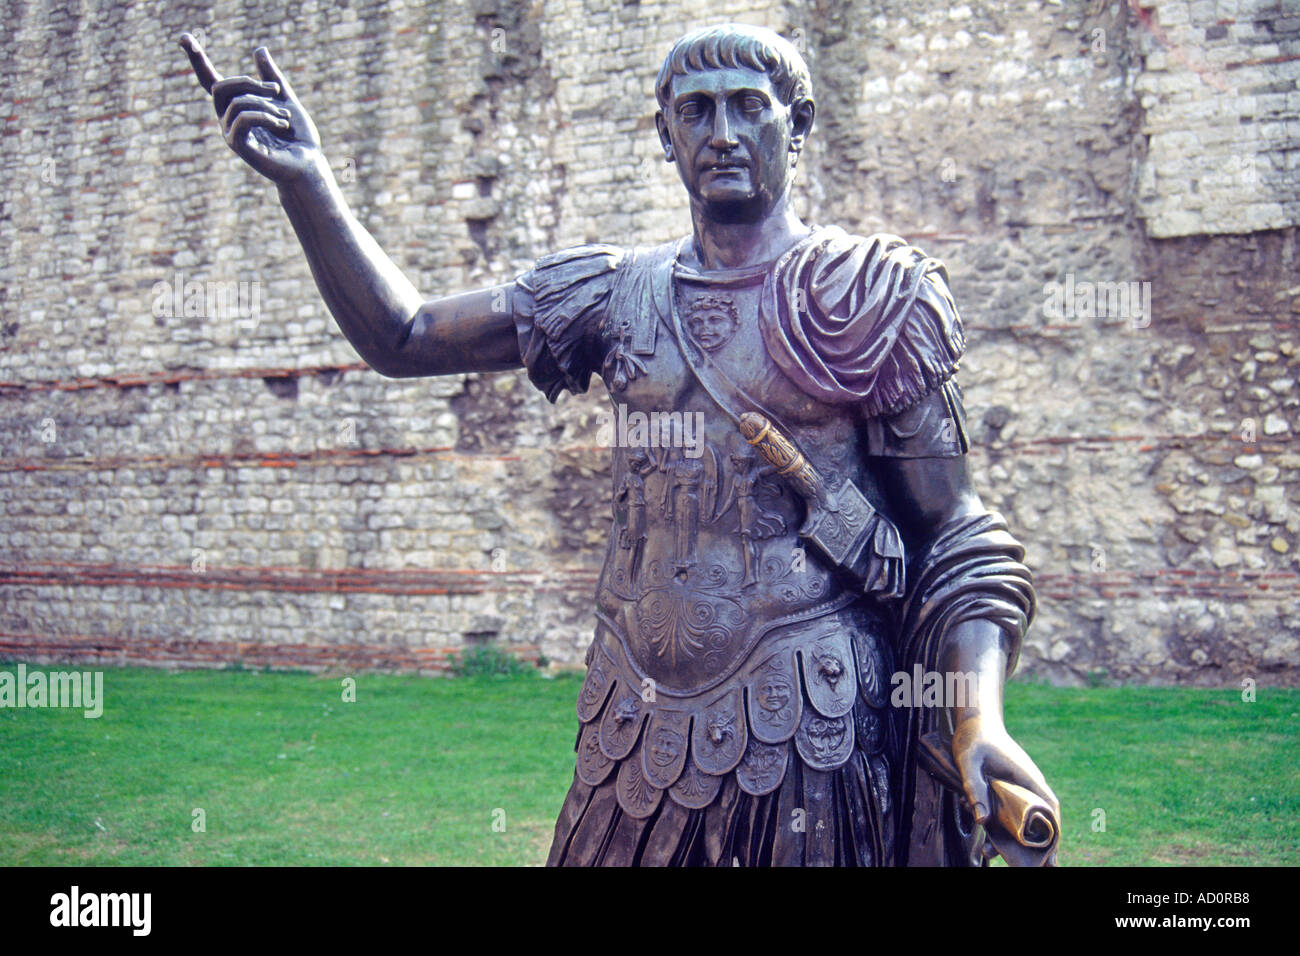 Statue of the Roman emperor Trajan in London. - Stock Image